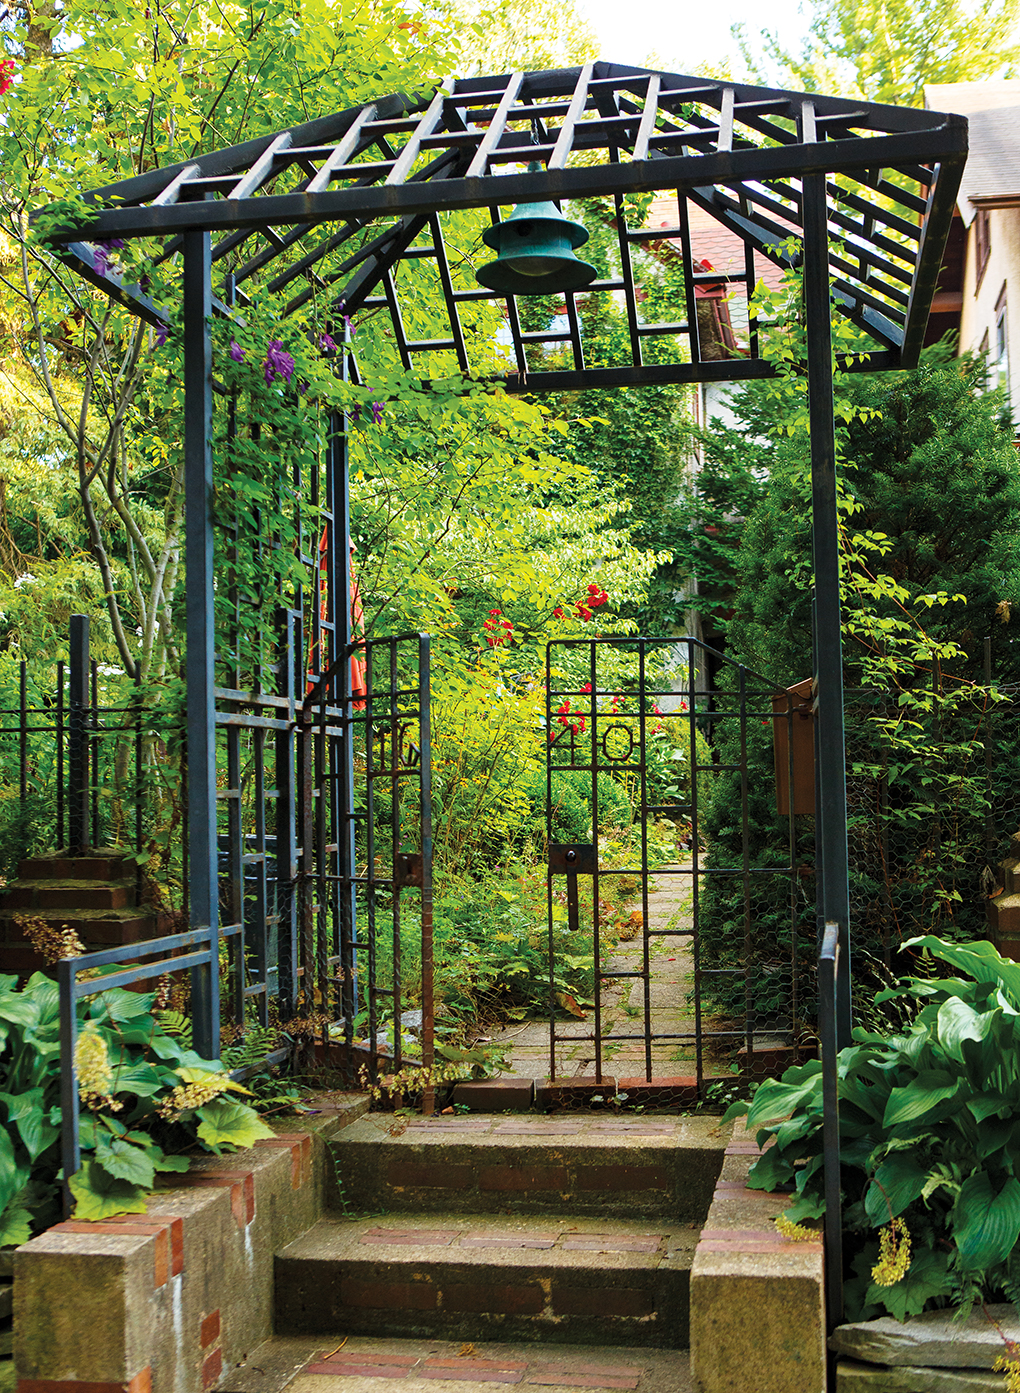 A gate leads to a lush and green garden.